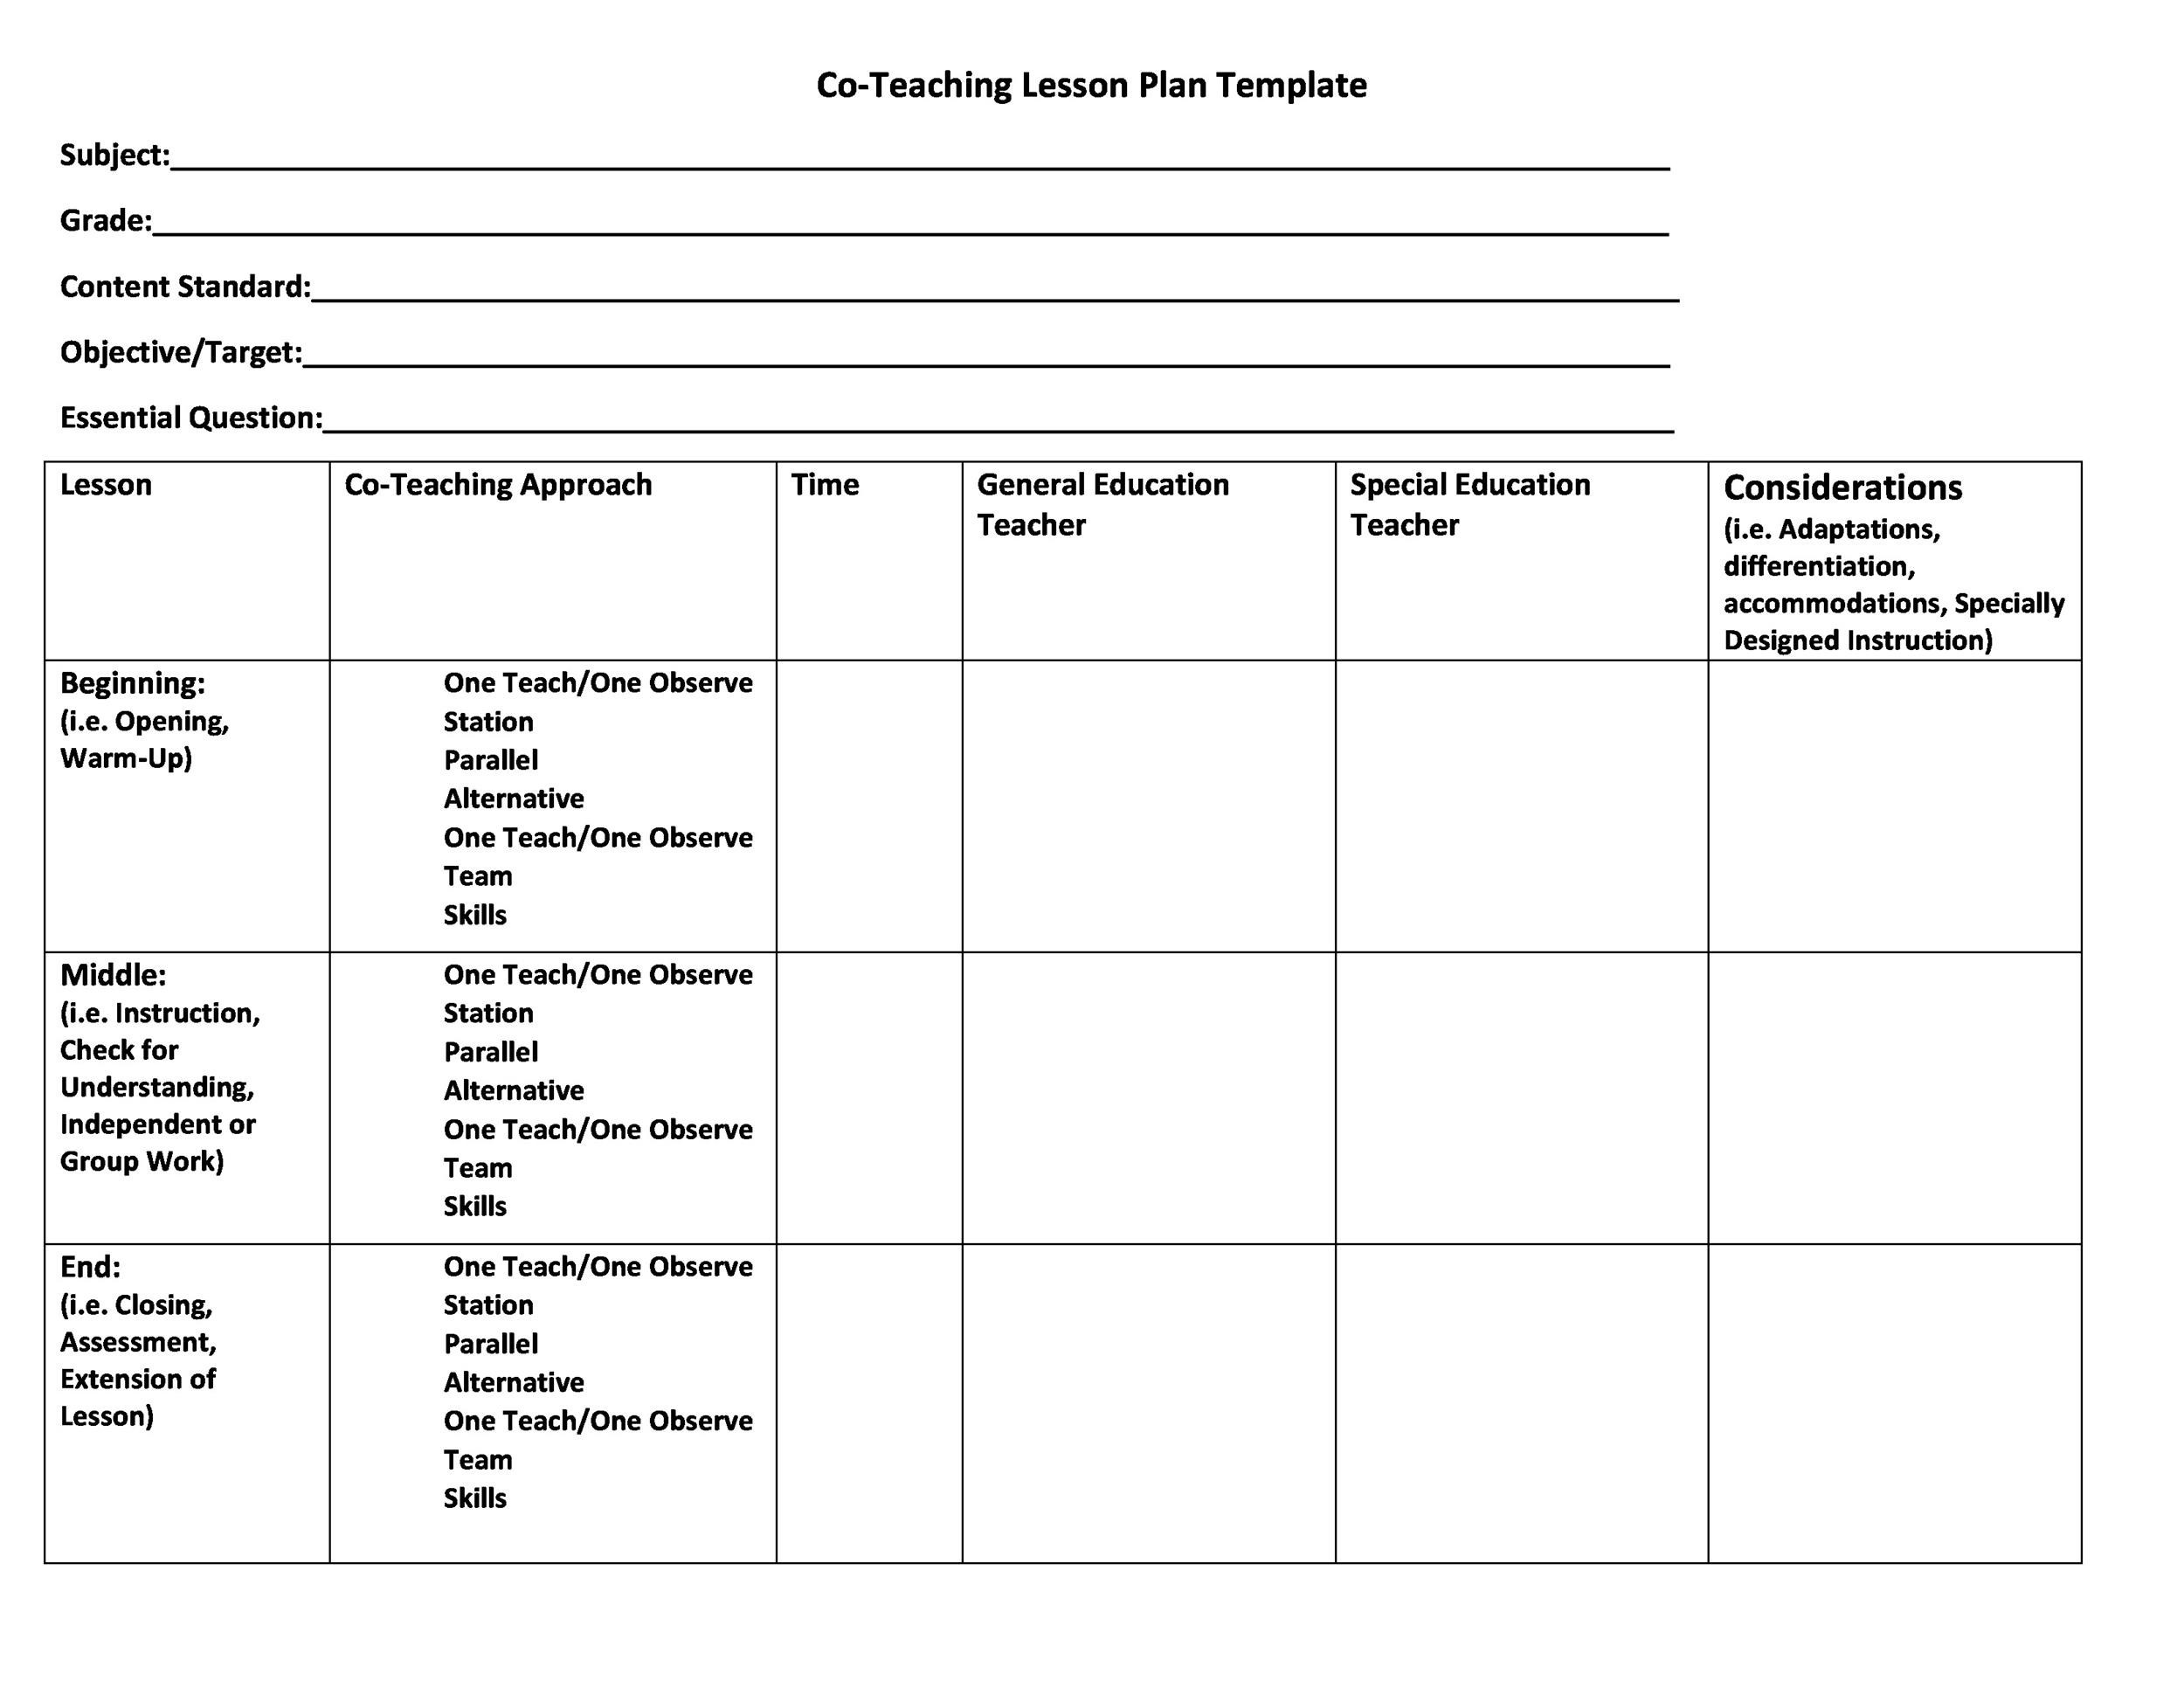 image about Printable Lesson Plan Template named 44 Absolutely free Lesson Application Templates [Well-liked Main, Preschool, Weekly]